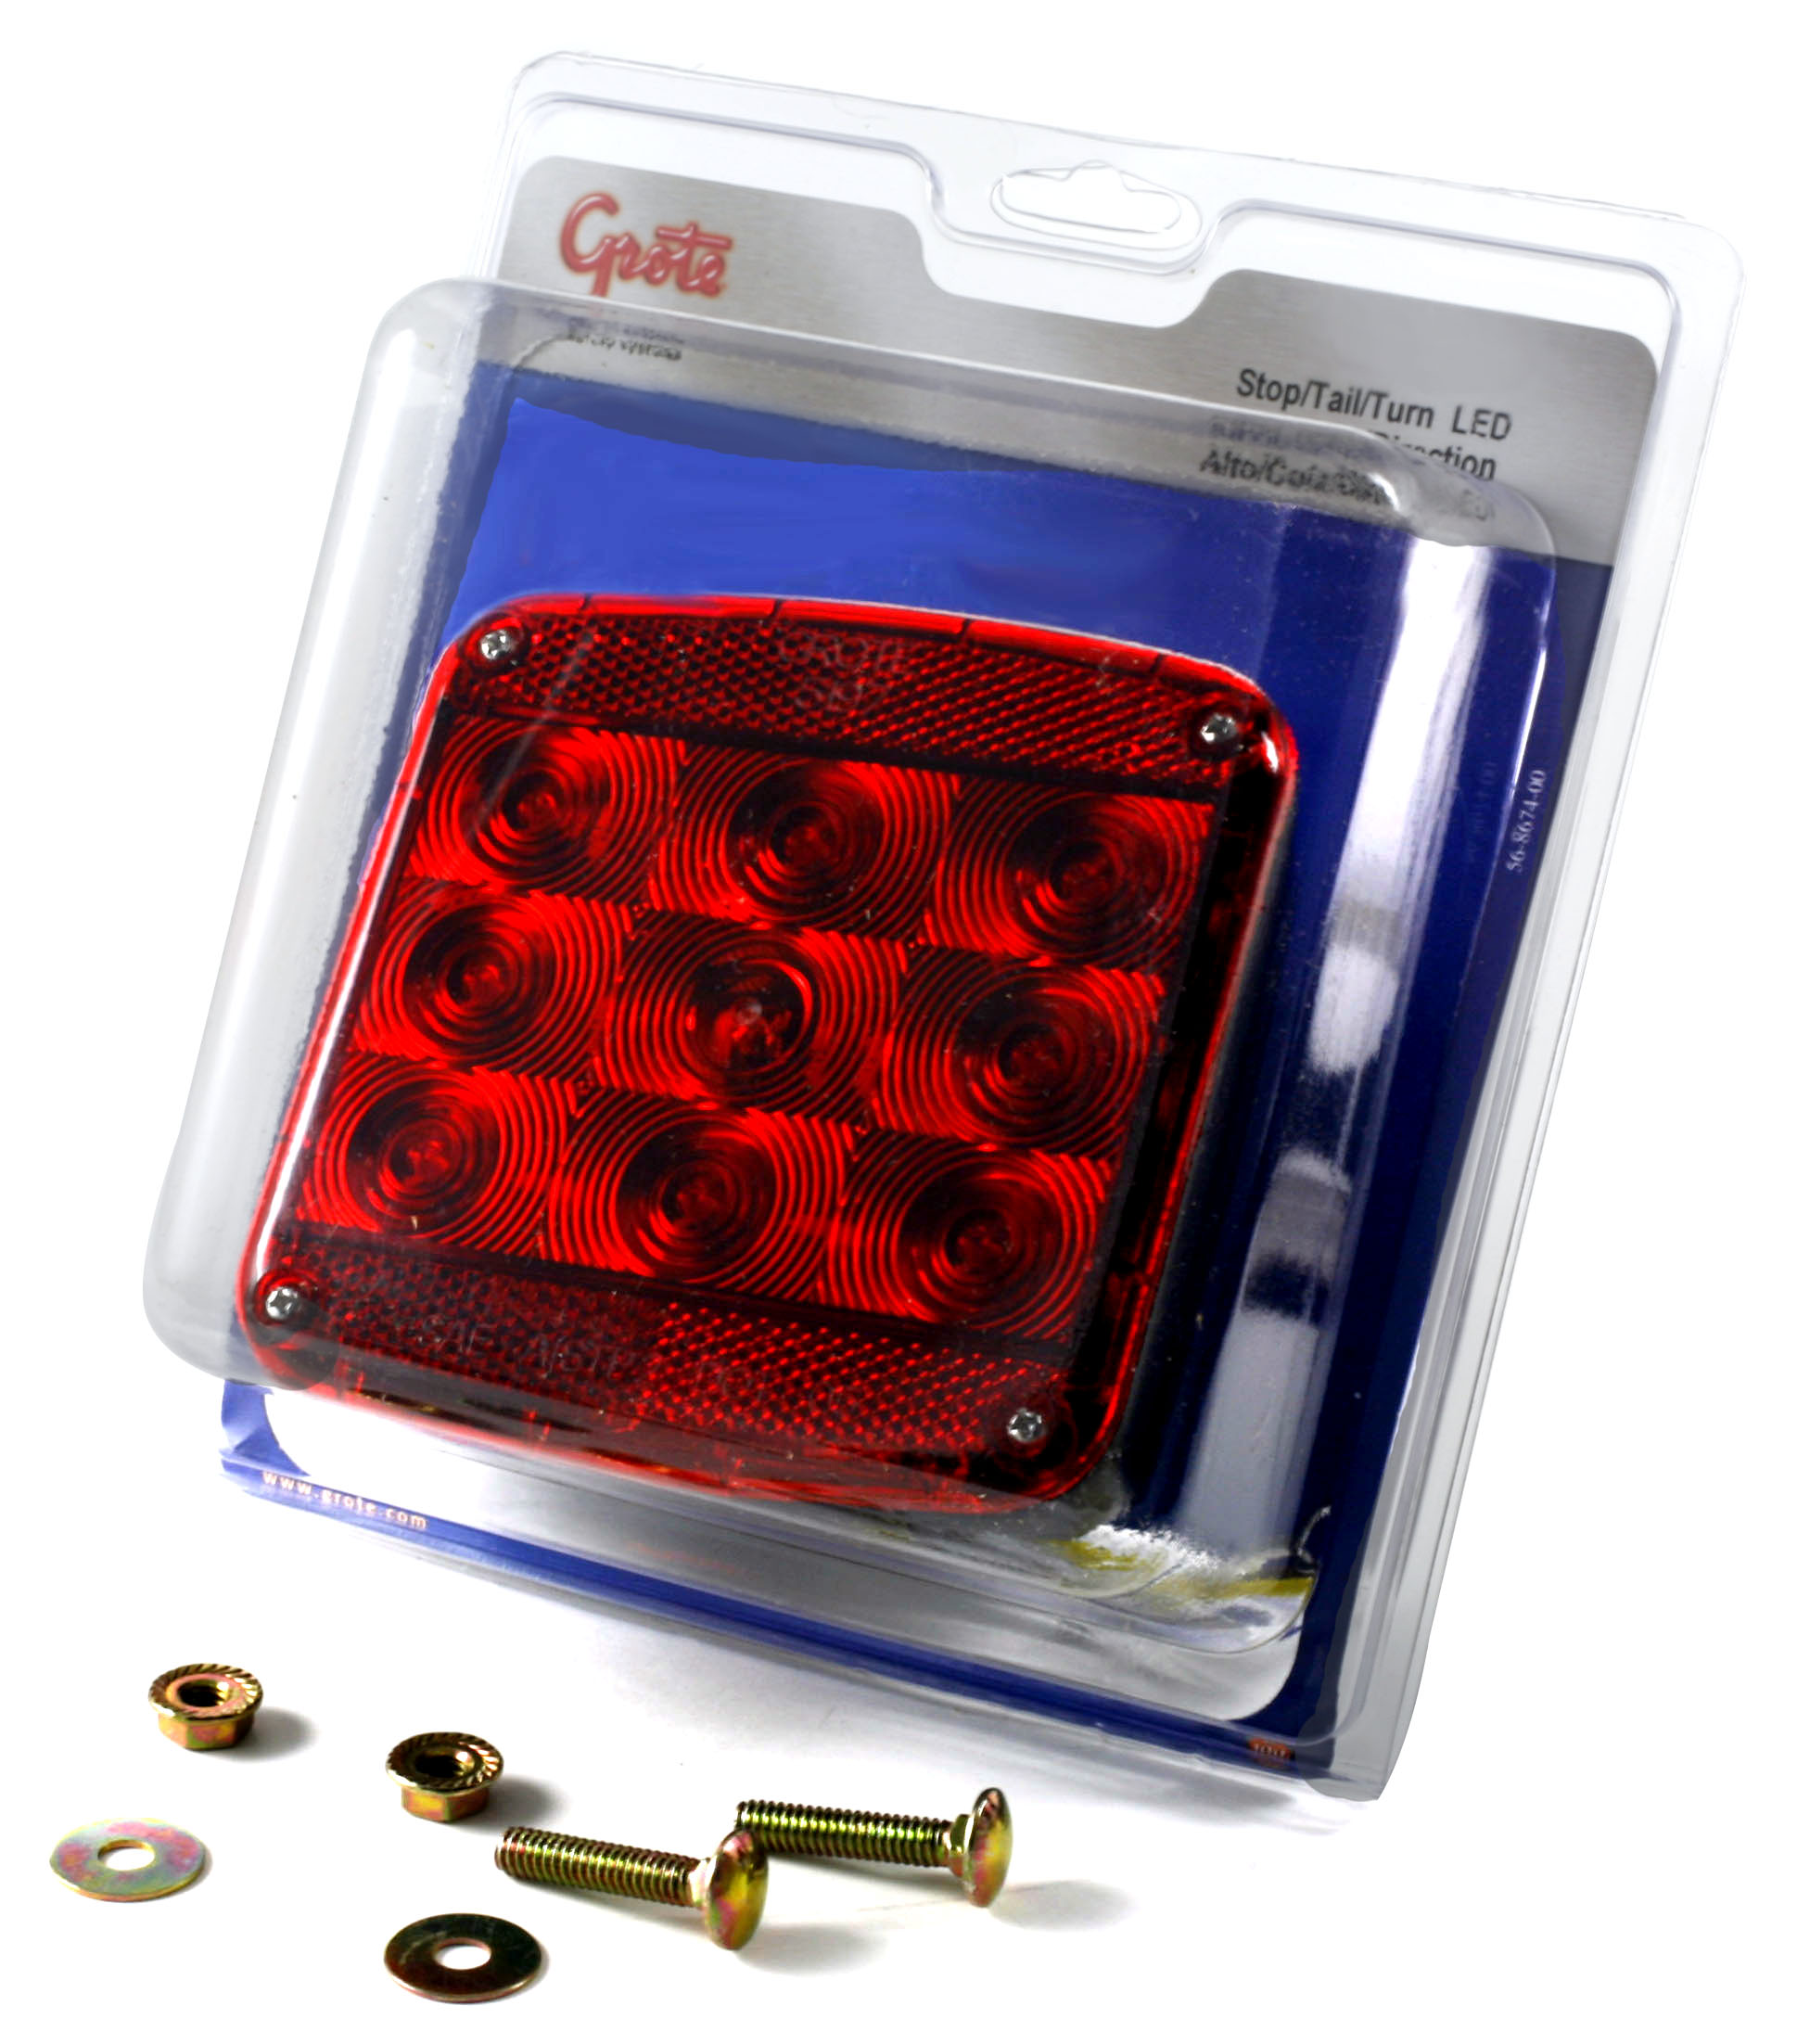 51962-5 – LED RH Stop Tail Turn Replacement for Submersible Trailer Lighting Kit, Red, Retail Pack